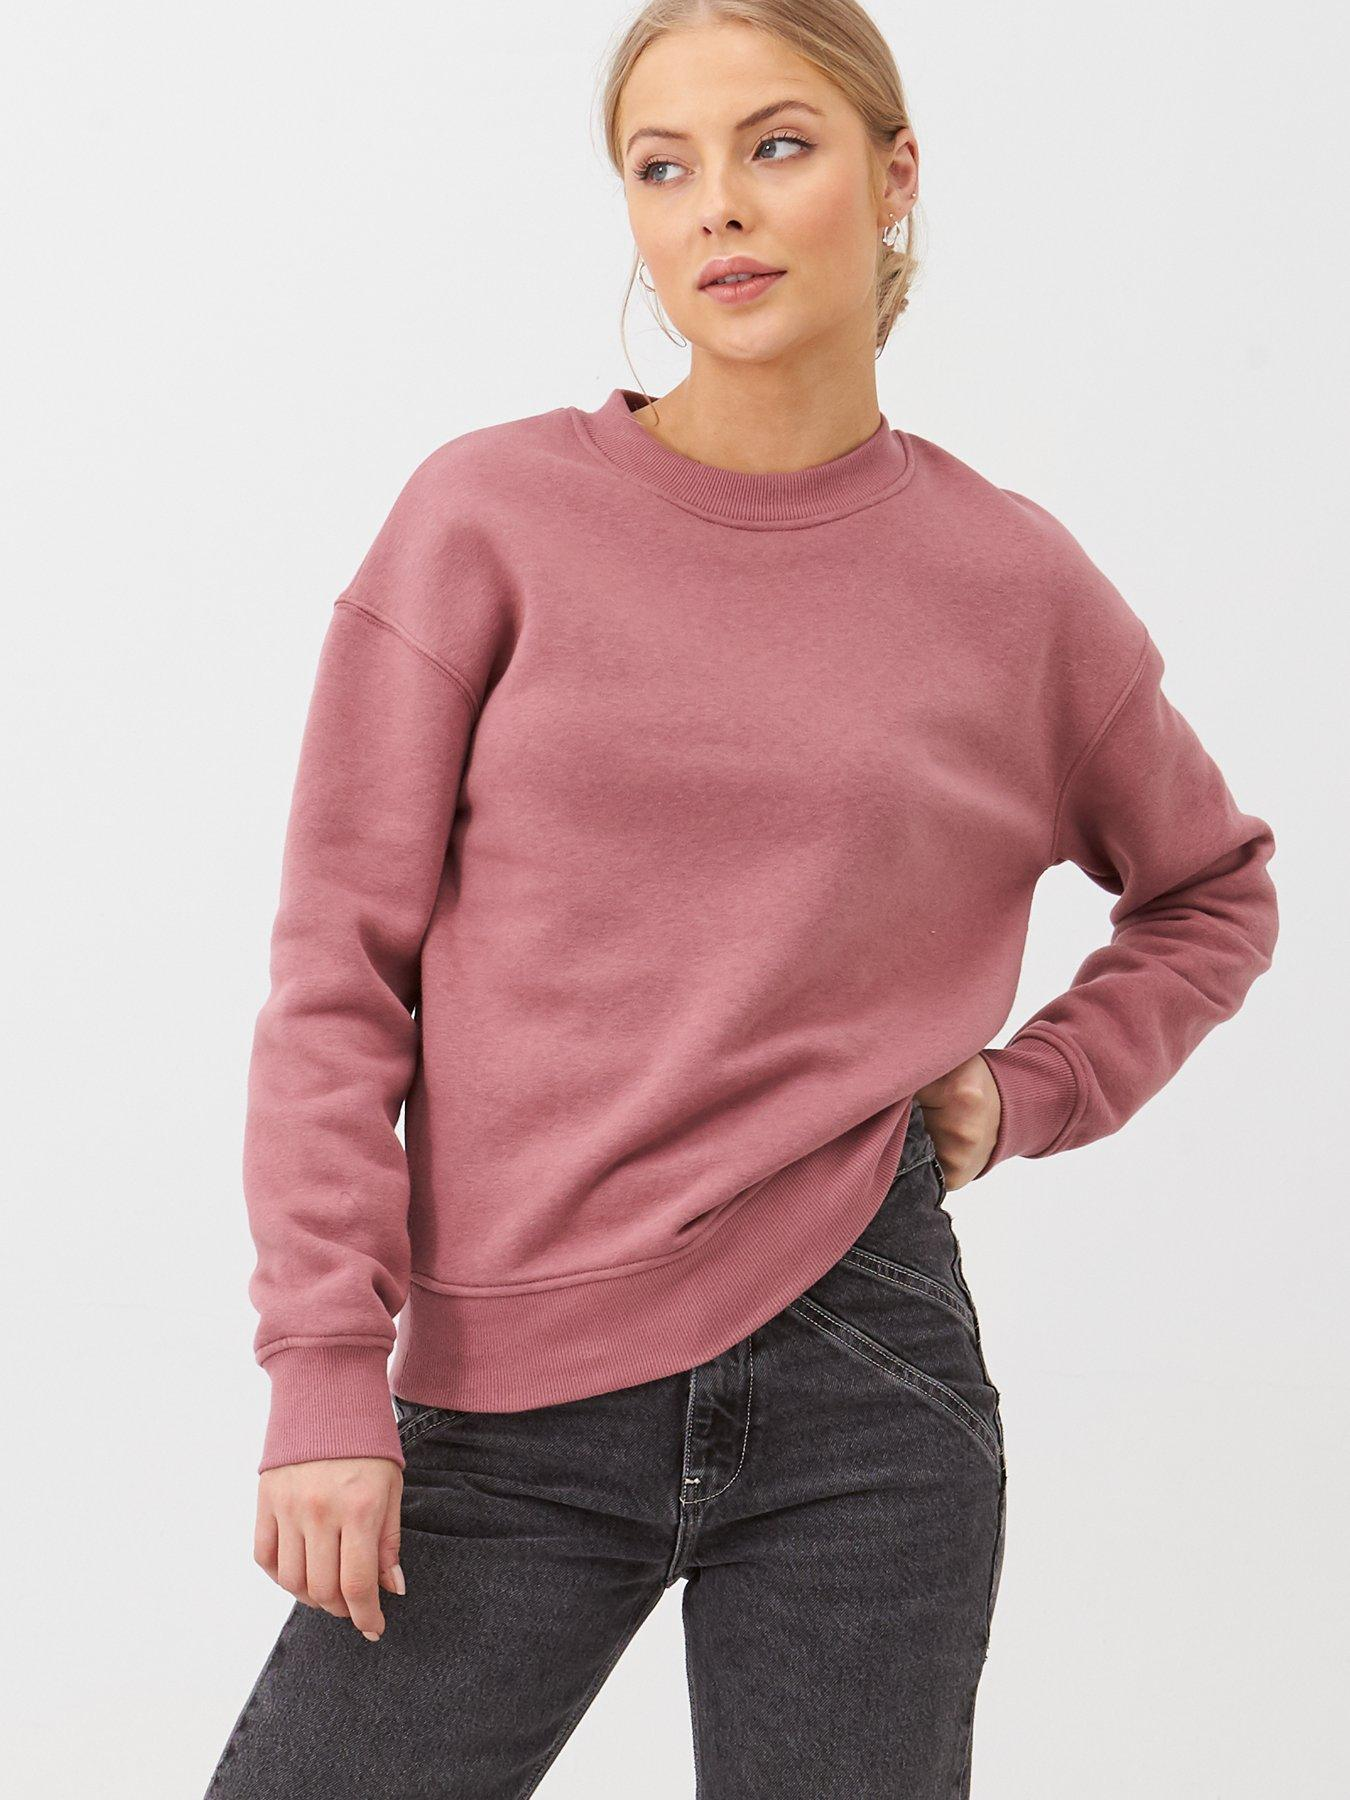 Girls Oversized L.A Sweat Top in Blush Pink Size 9-12 Years rrp £24 Pink Jumper